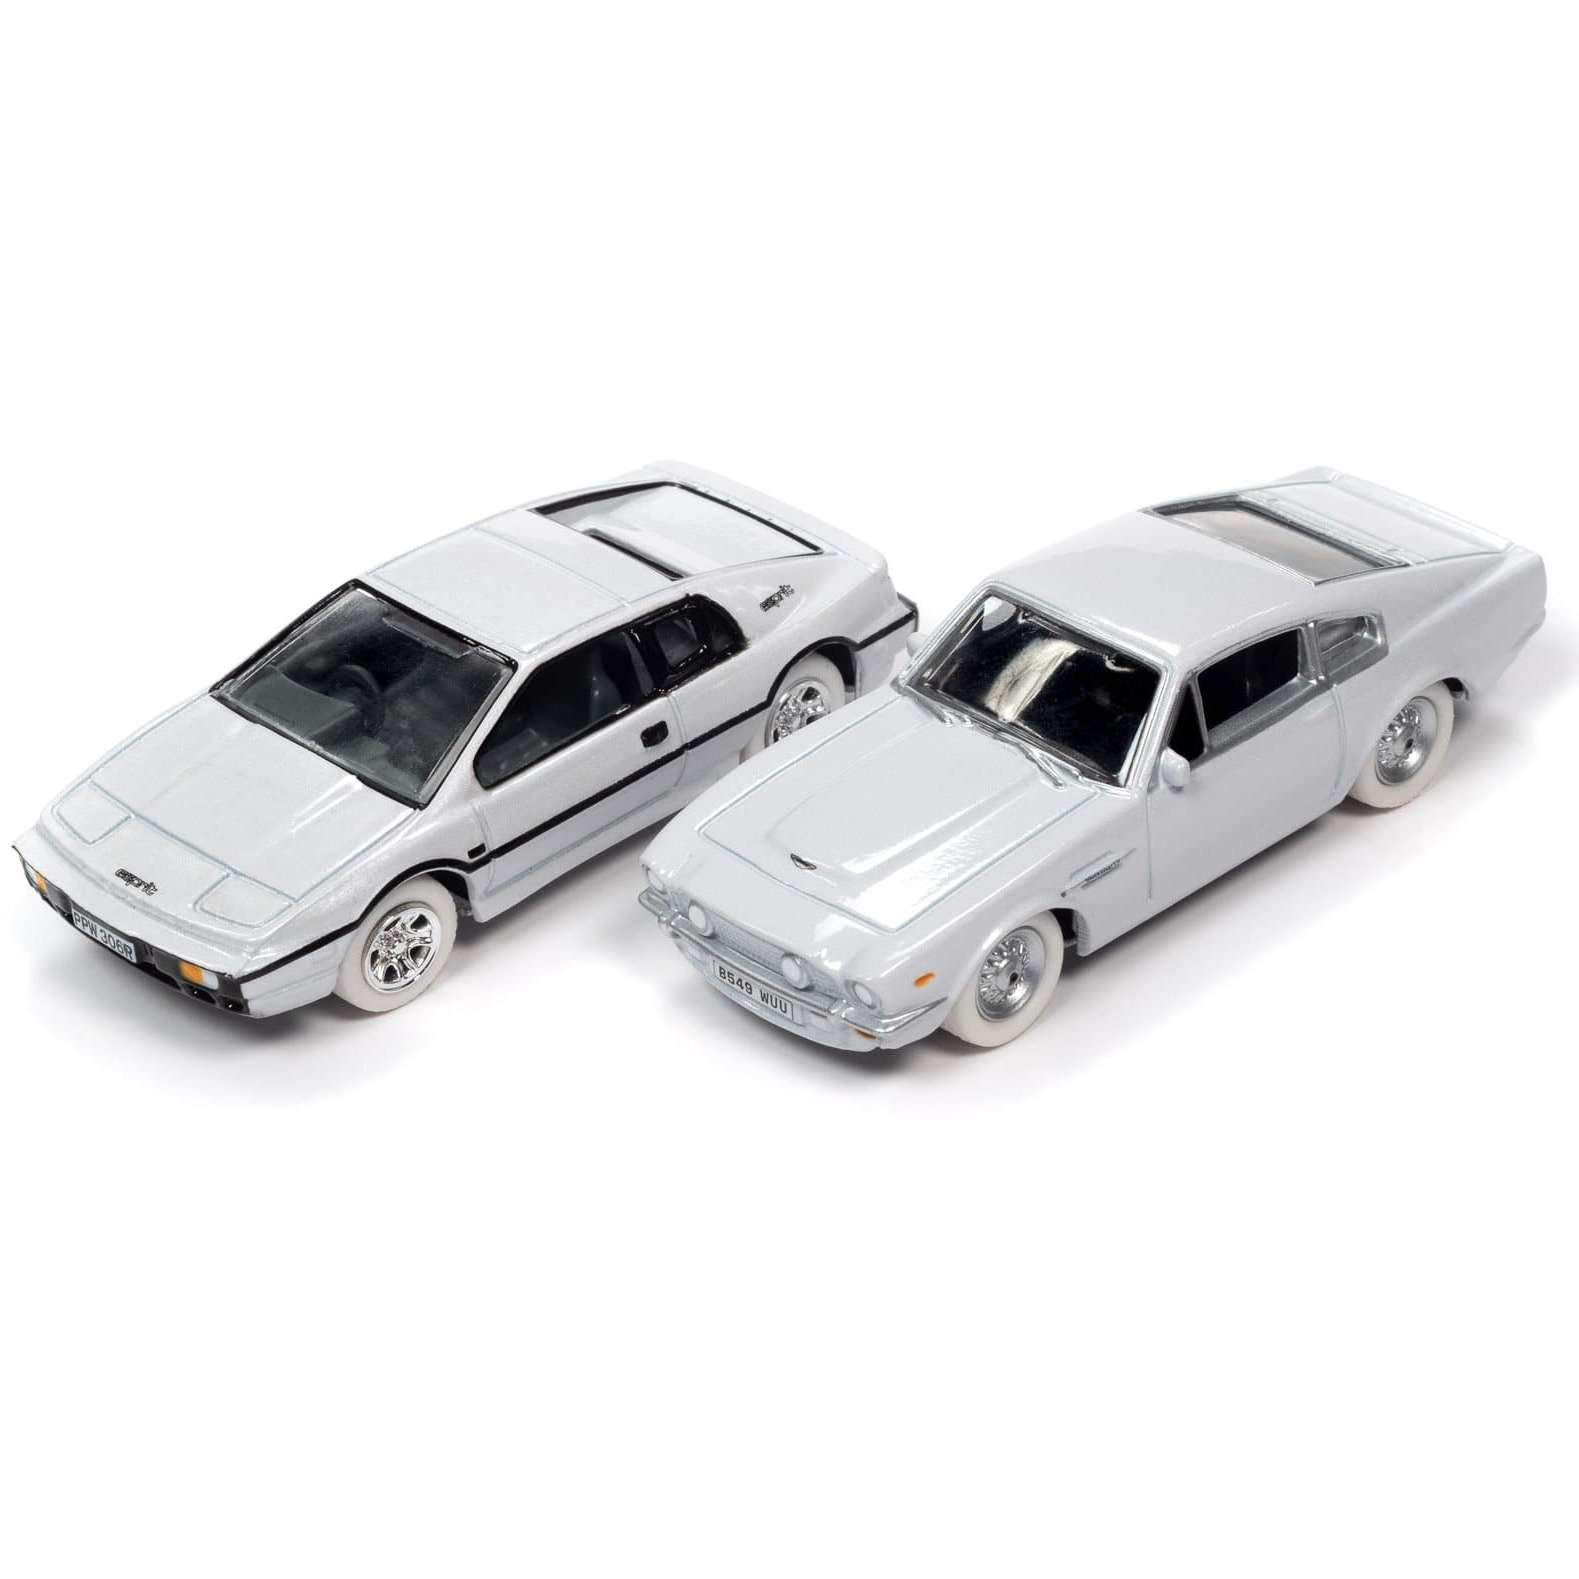 Aston Martin V8 with Display Tin - No Time To Die Edition - by Round 2 (Pre-order)